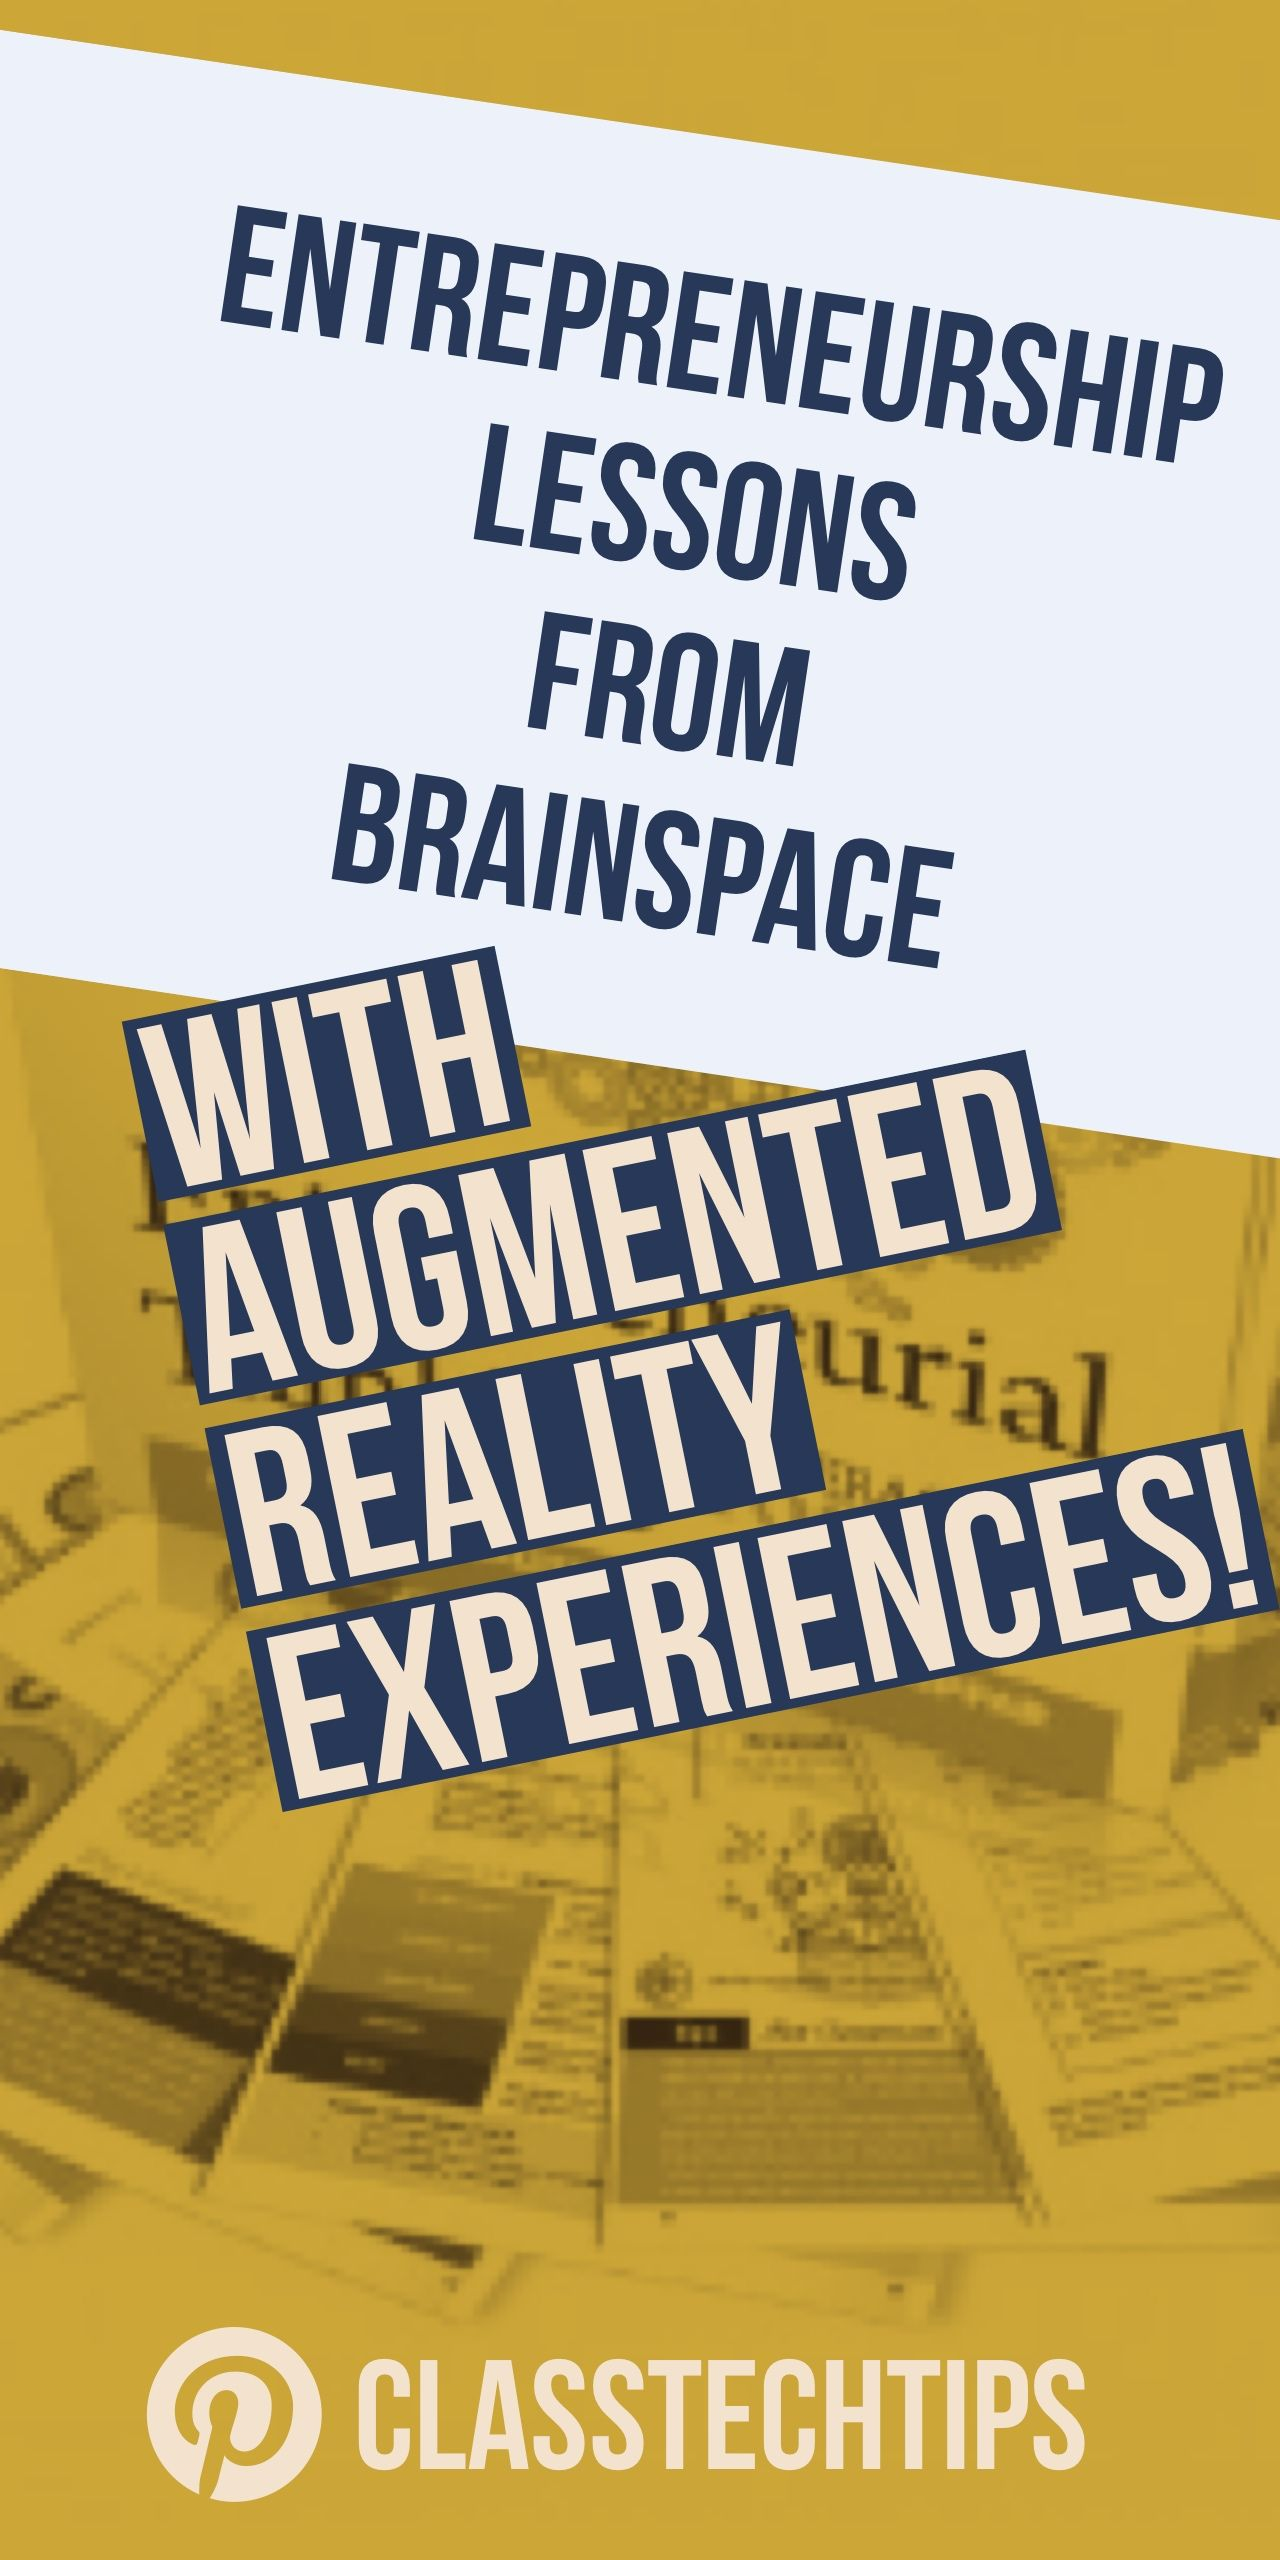 Entrepreneurship Lessons from Brainspace with Augmented